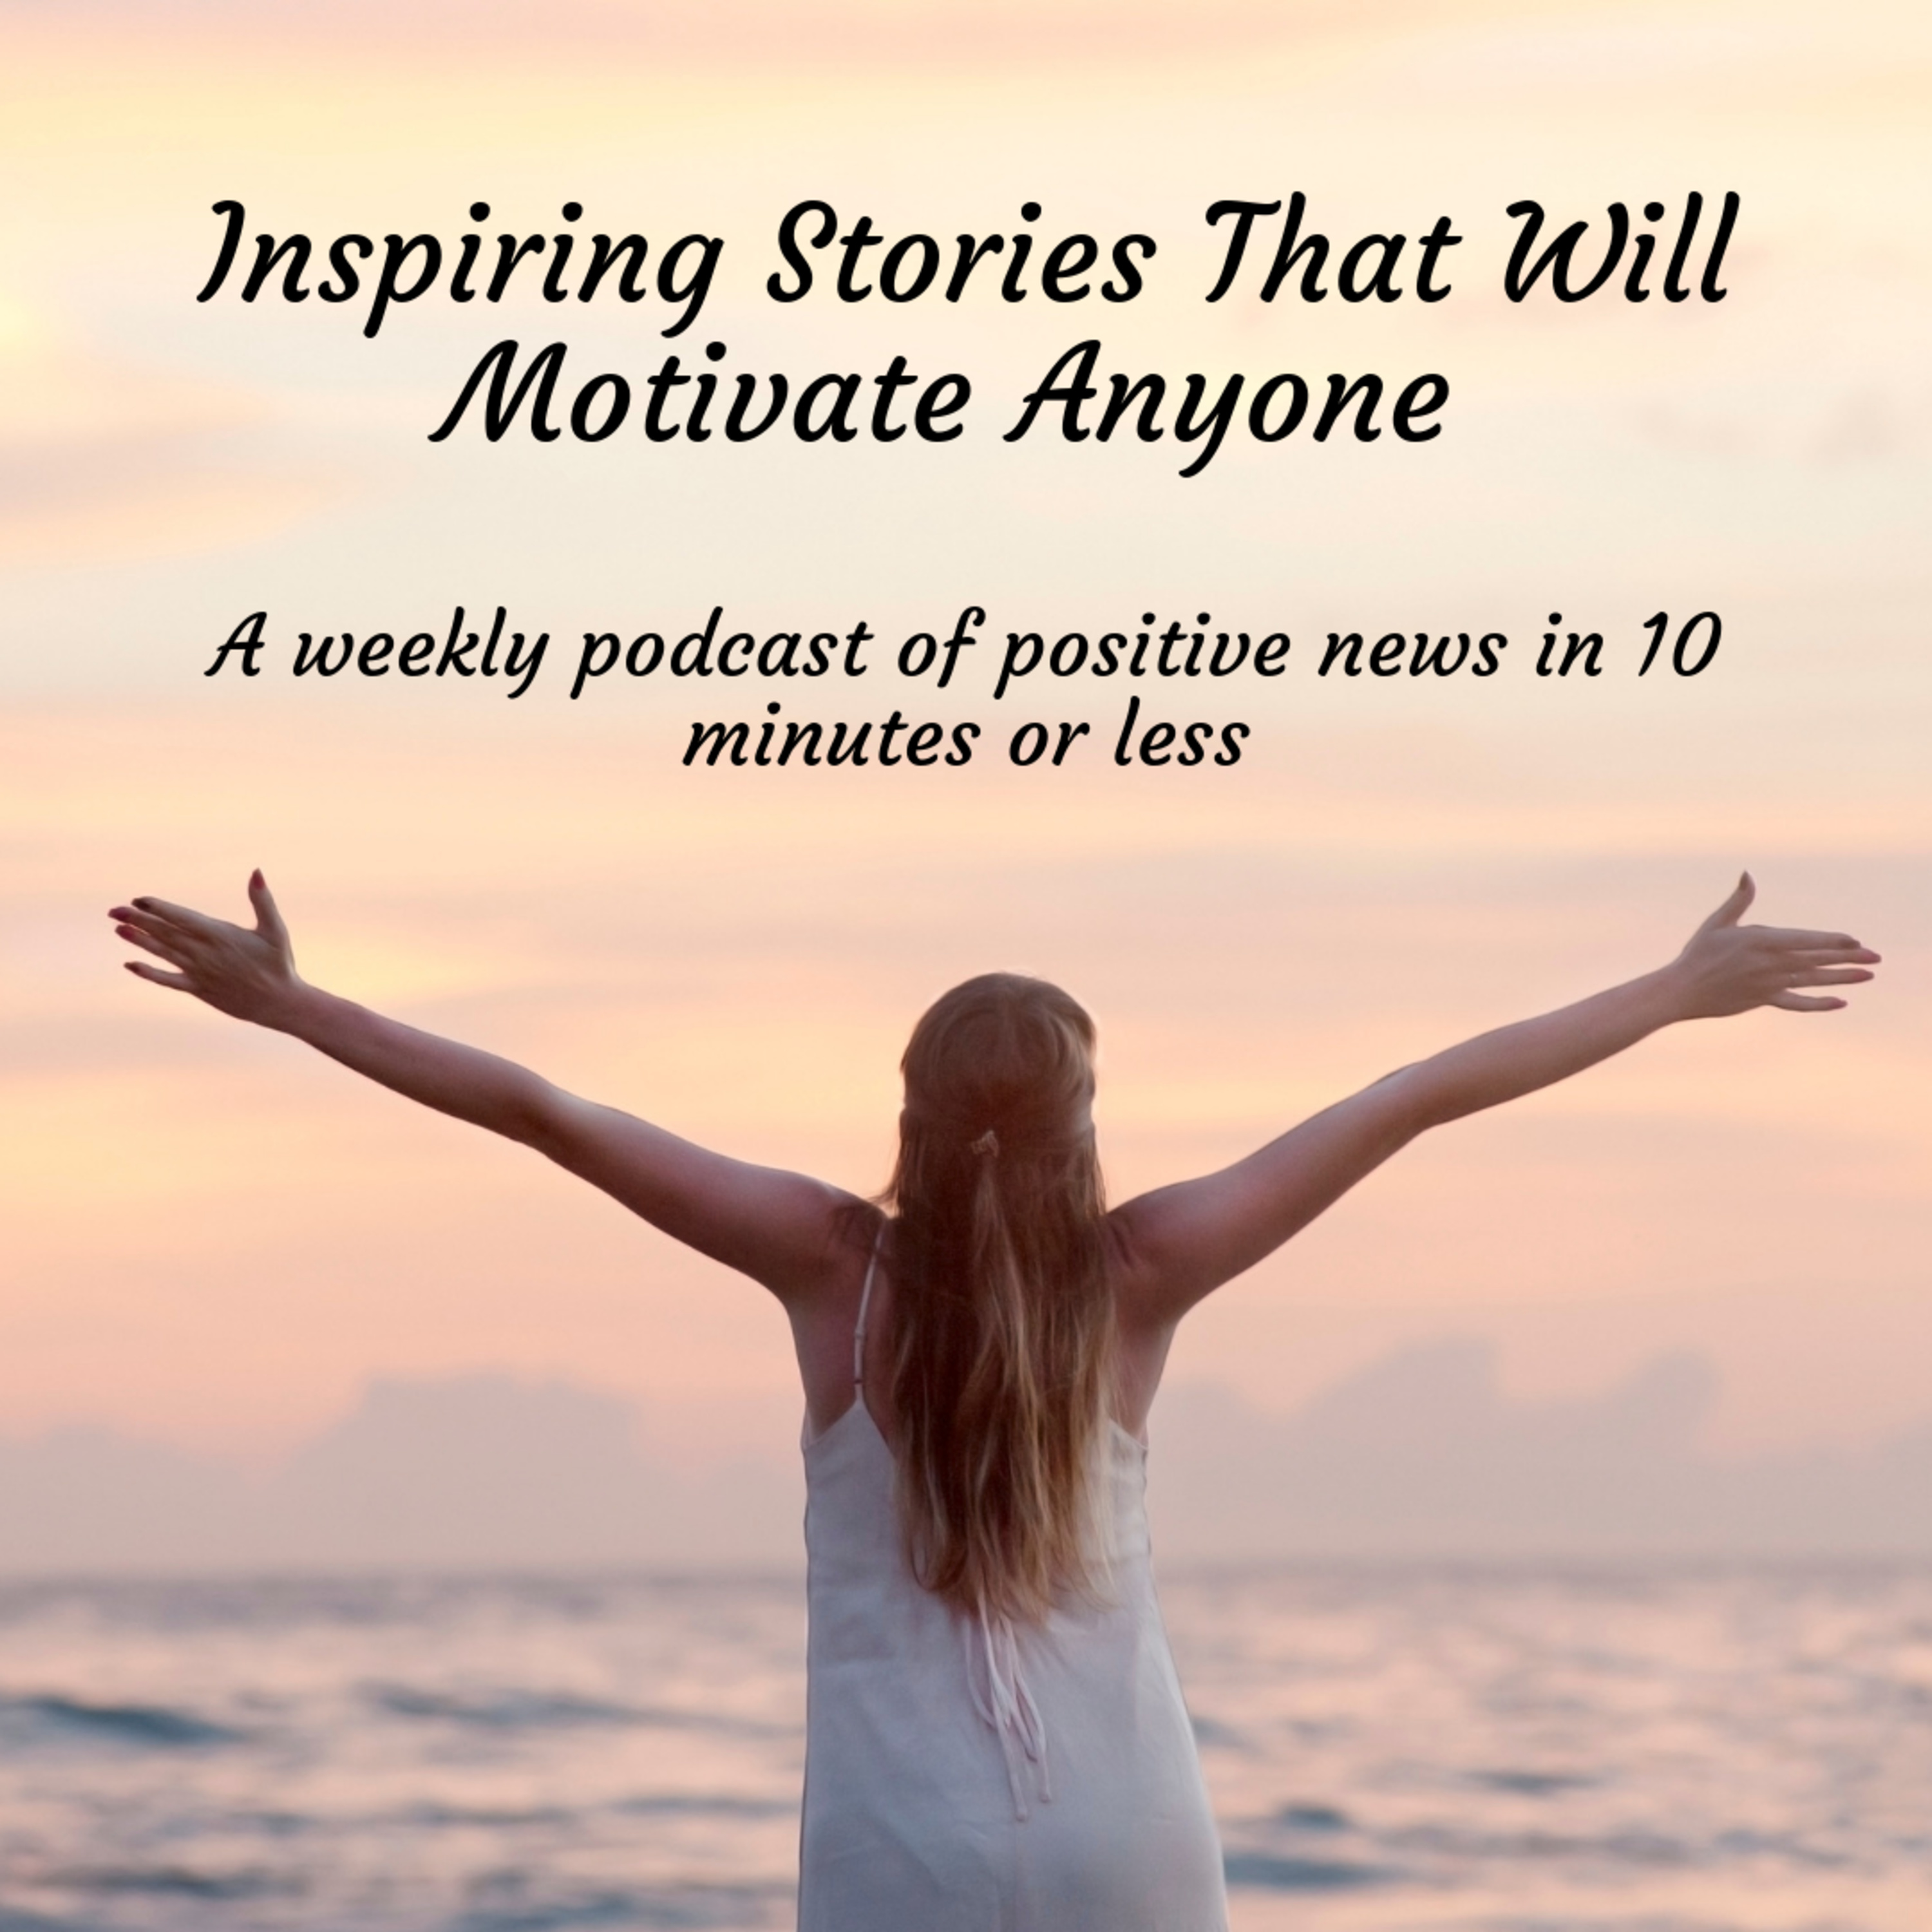 Inspiring Stories That Will Motivate Anyone - Episode 34